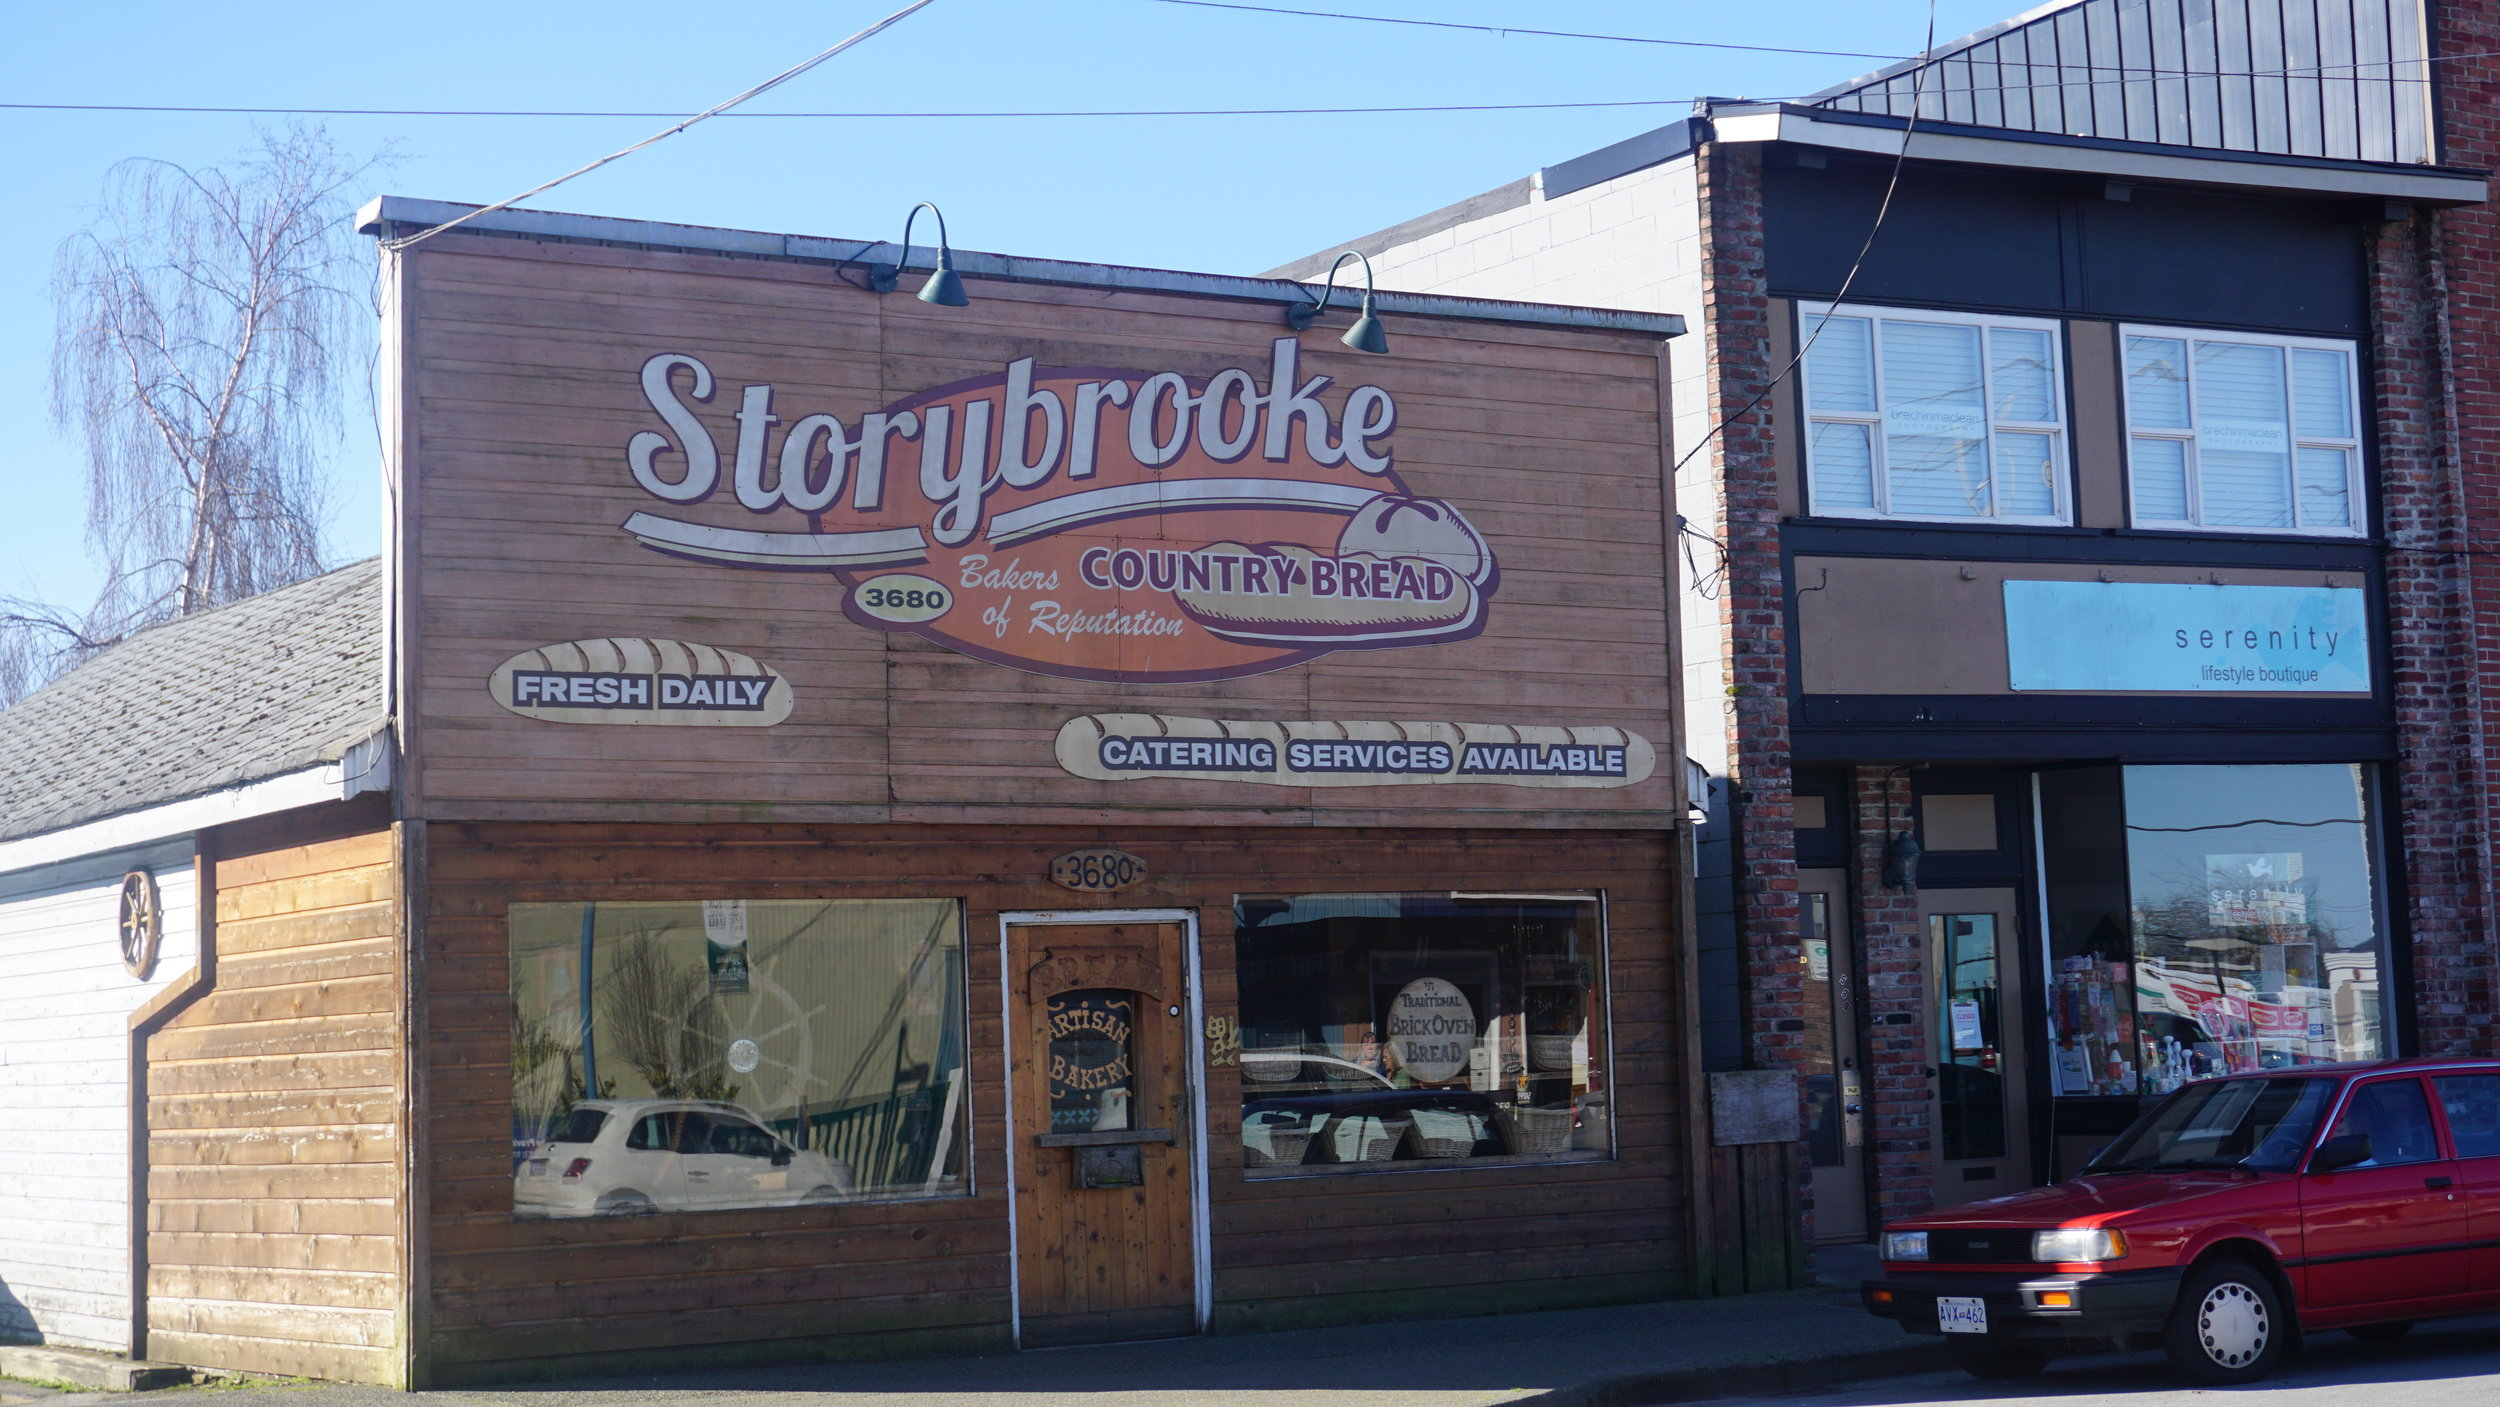 For travelers seeking a small town feel, venture 15 minutes to Steveston Village—home of ABC's Once Upon a Time Storybrooke.